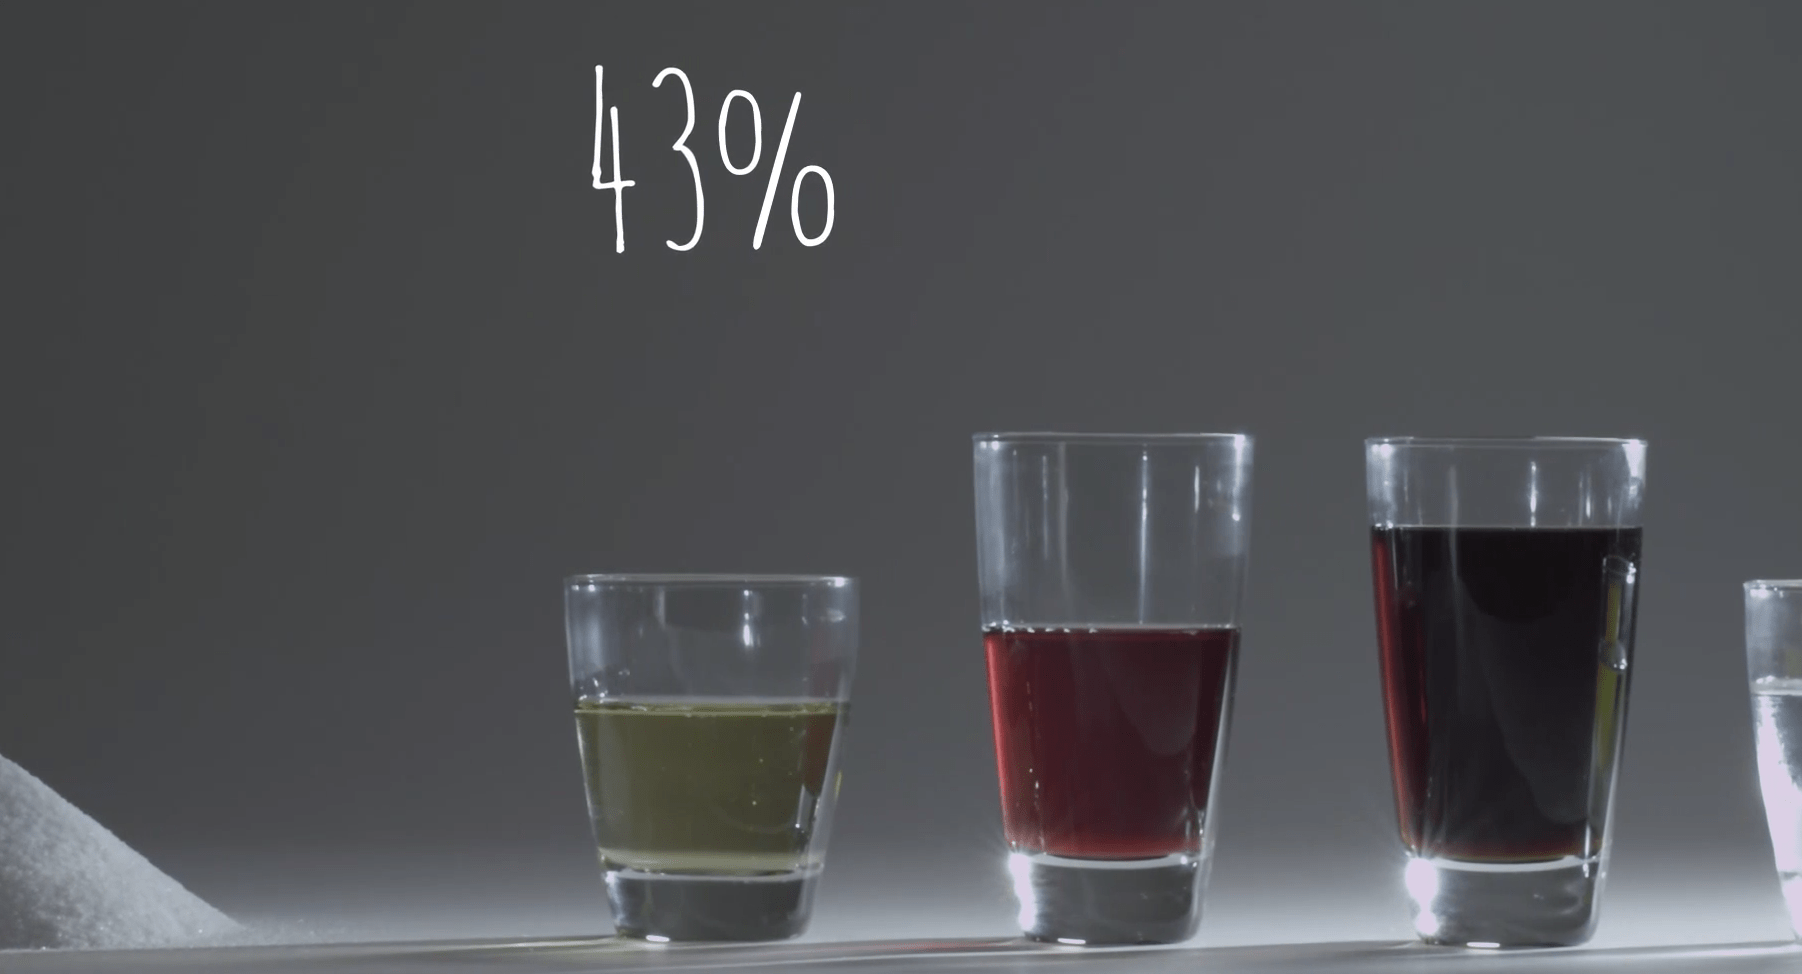 Around 43% of added sugar in our diets come from sweetened beverages.